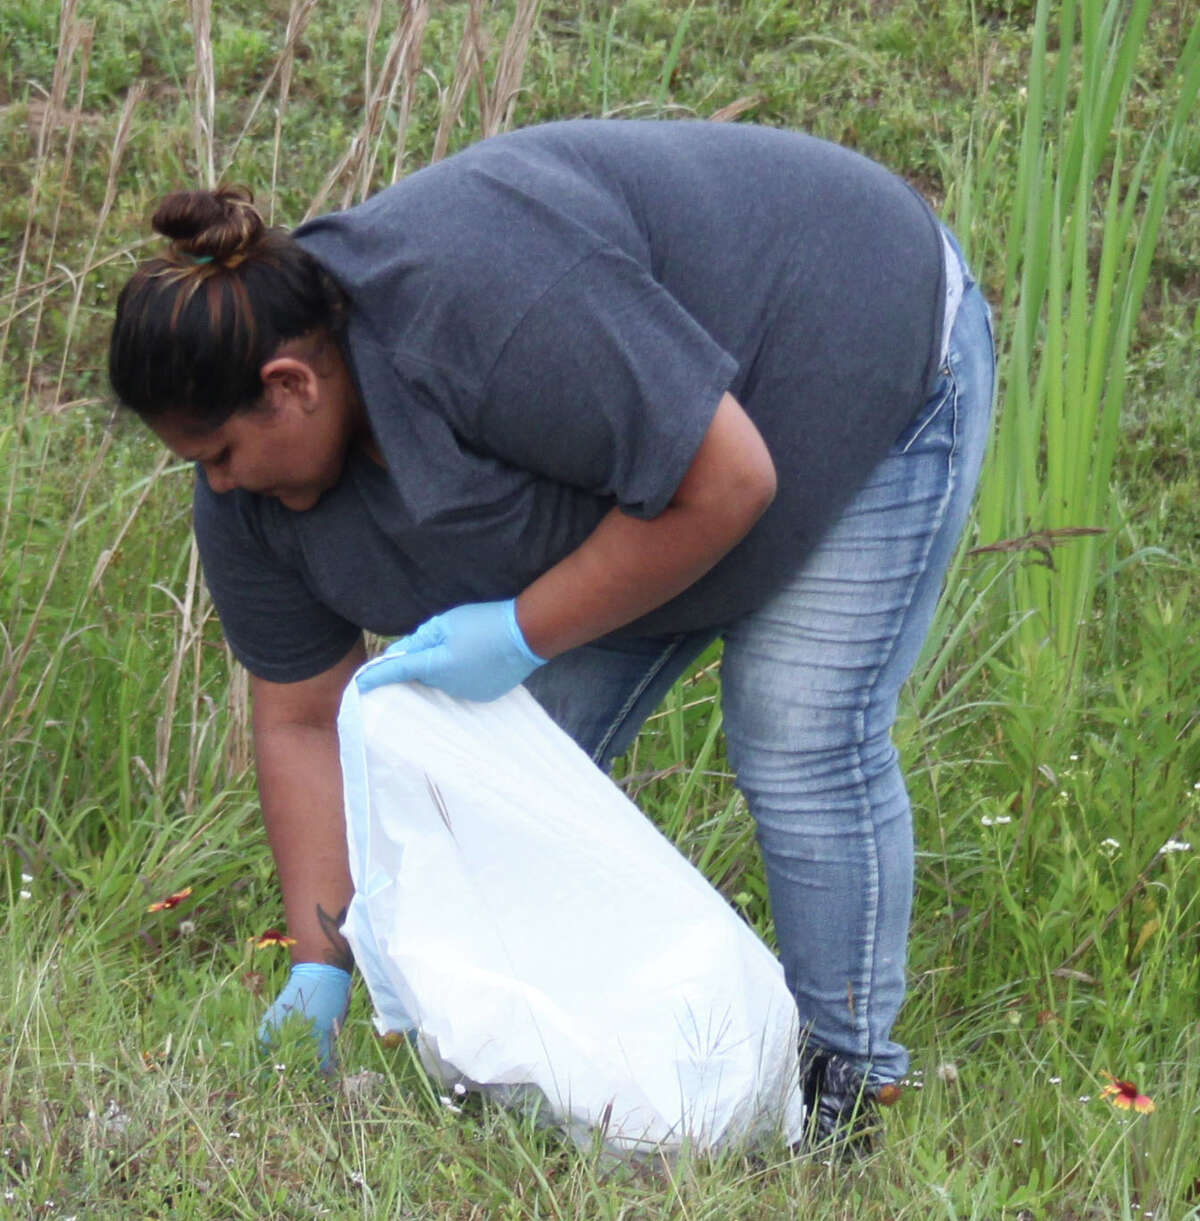 Nohemi Gonzalez tidies up Liberty St in Shepherd, Texas as part of the Clean Up Shepherd event held on Earth Day April 22.